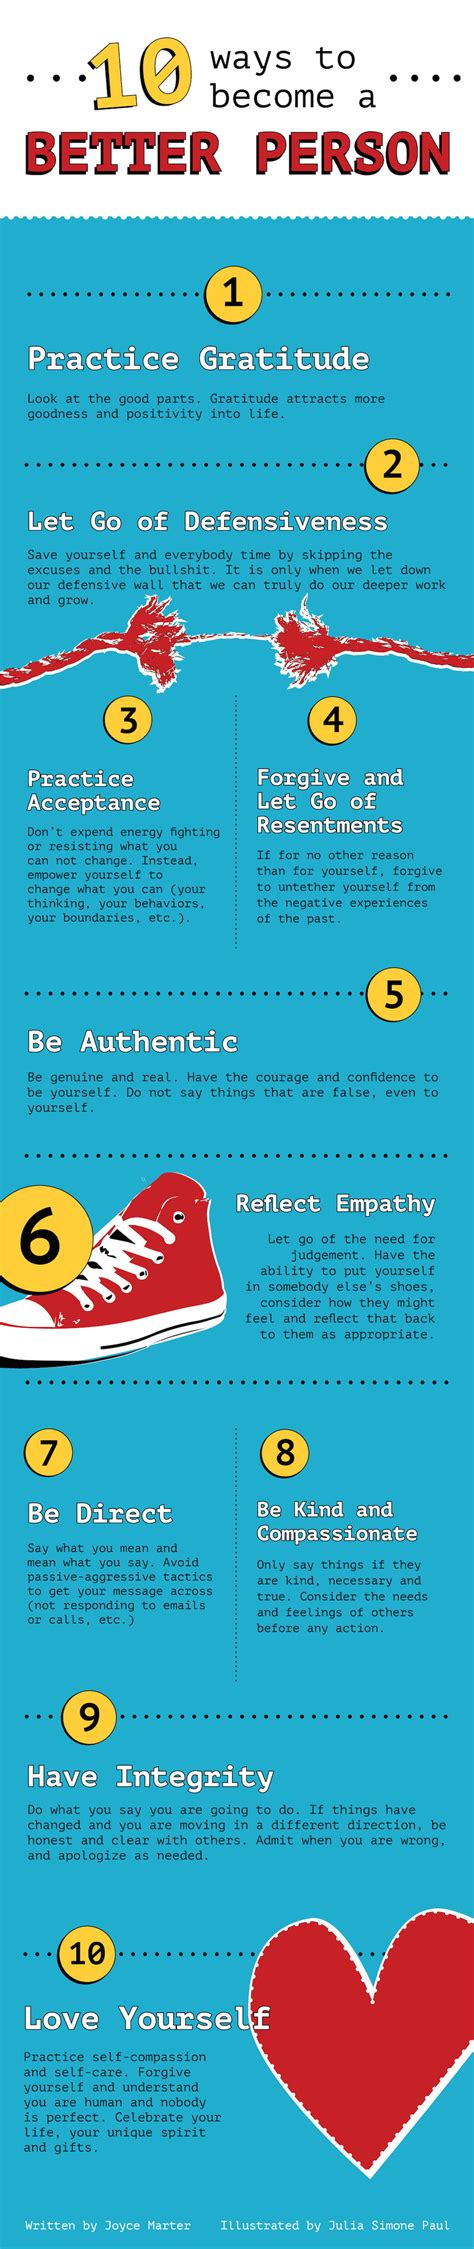 10 Easy Ways To Be A Better Person by 10 Ways To Become A Better Person Pictures Photos And